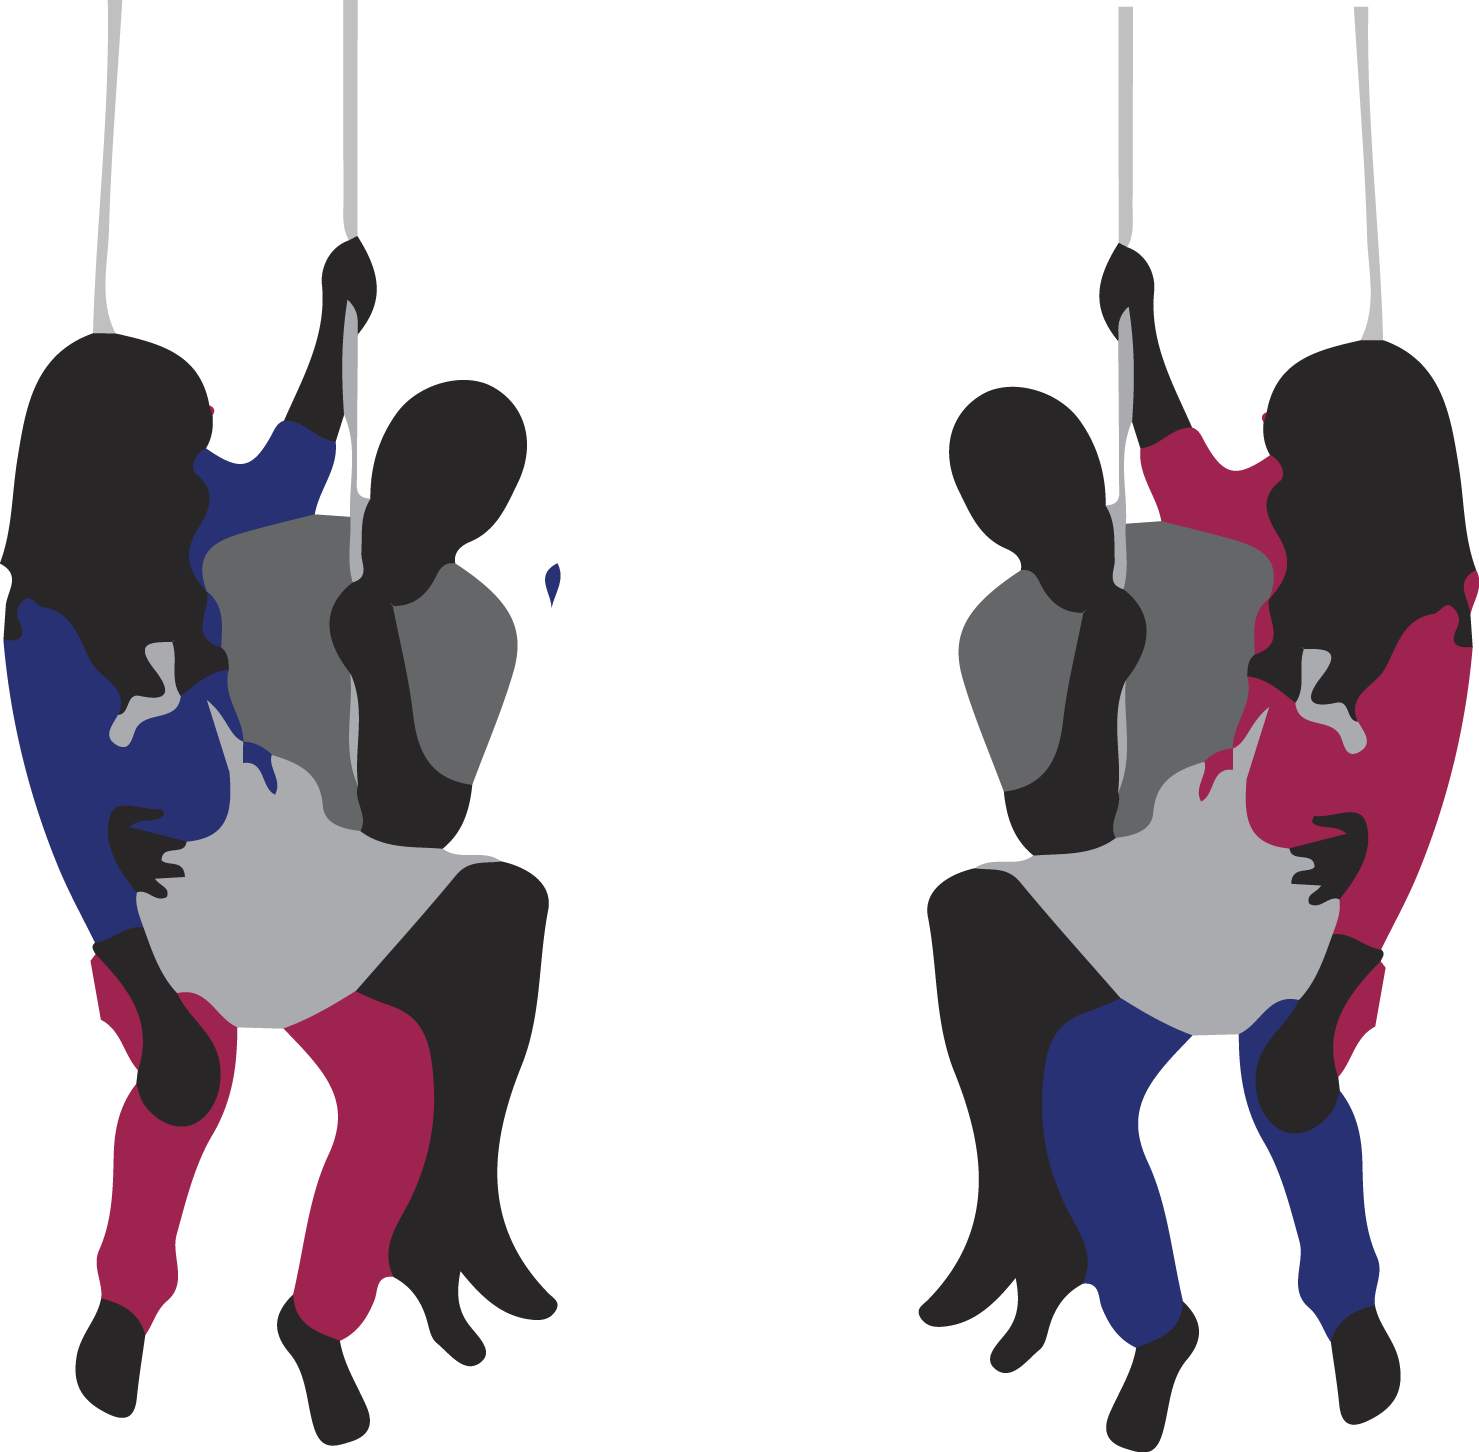 2 sets of couples swapping partners while on swing sets